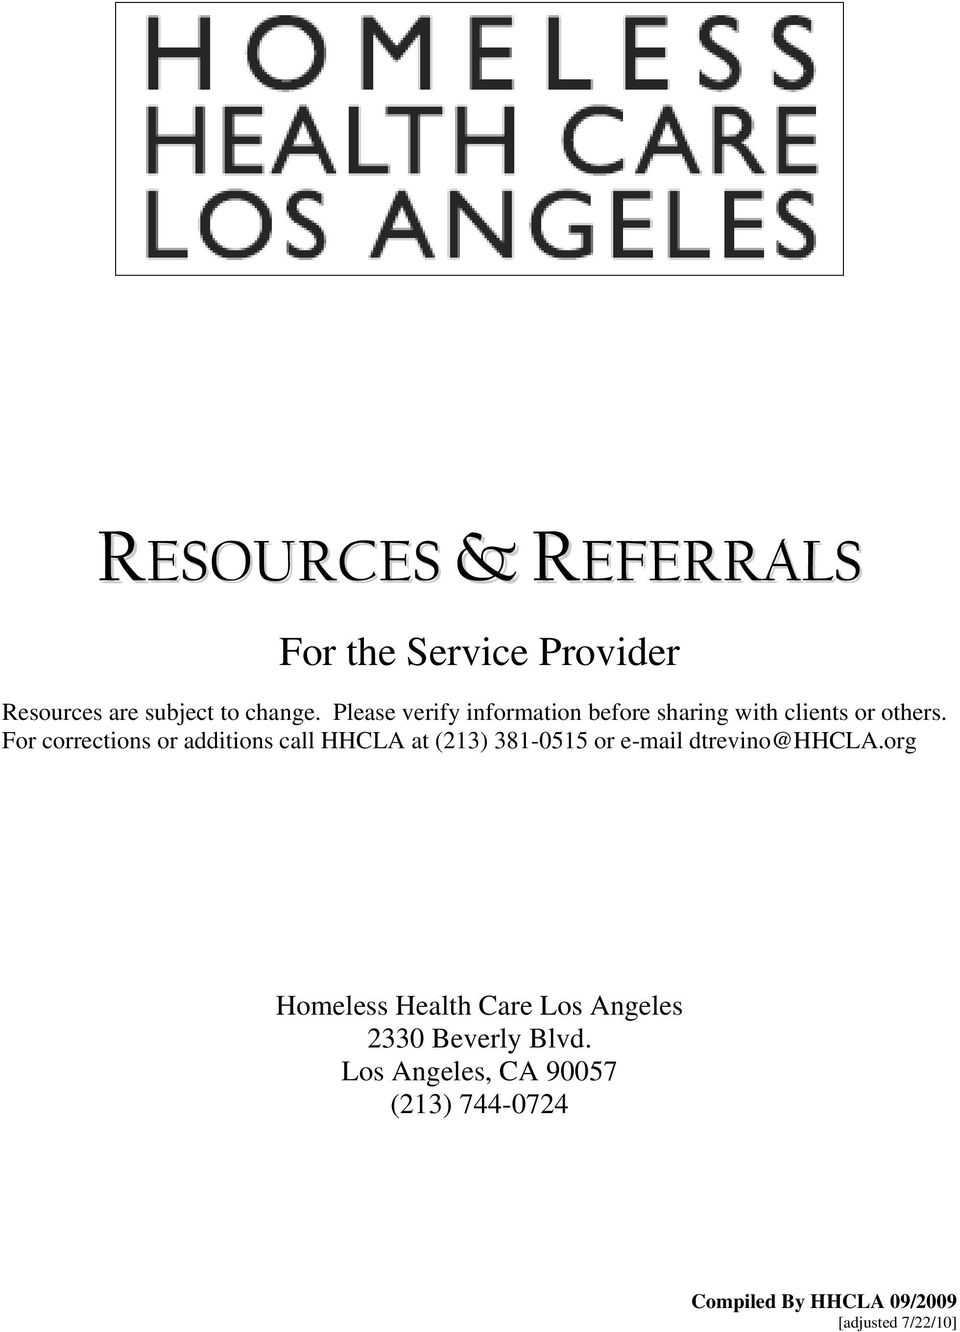 For corrections or additions call HHCLA at (213) 381-0515 or e-mail dtrevino@hhcla.